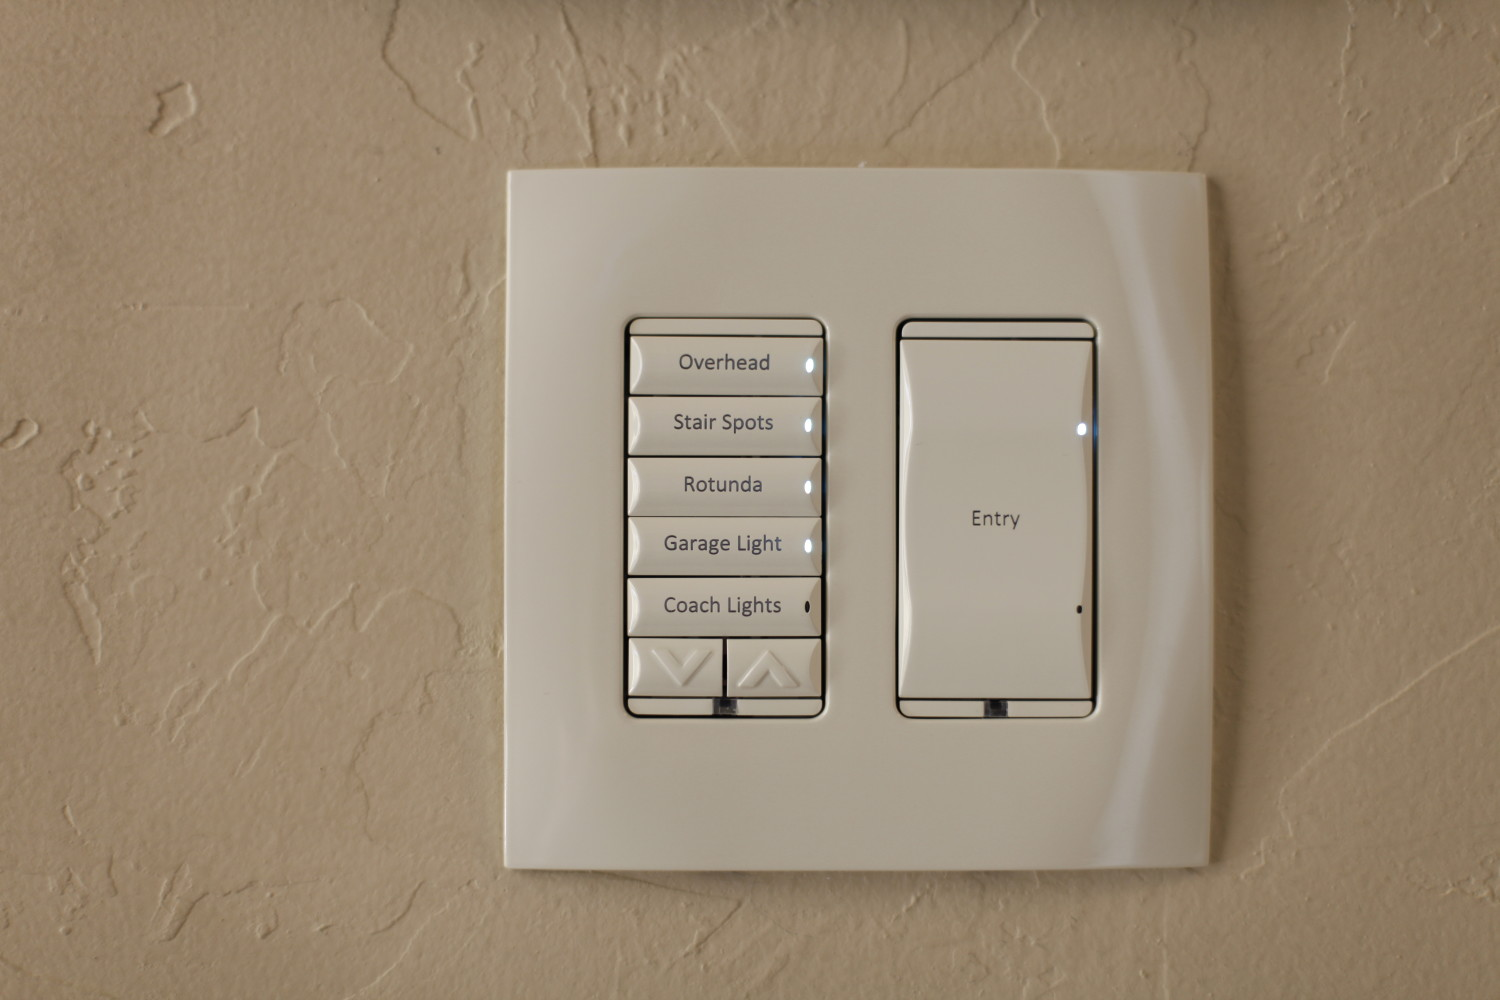 Lighting Control Systems Digital21 Smart Home